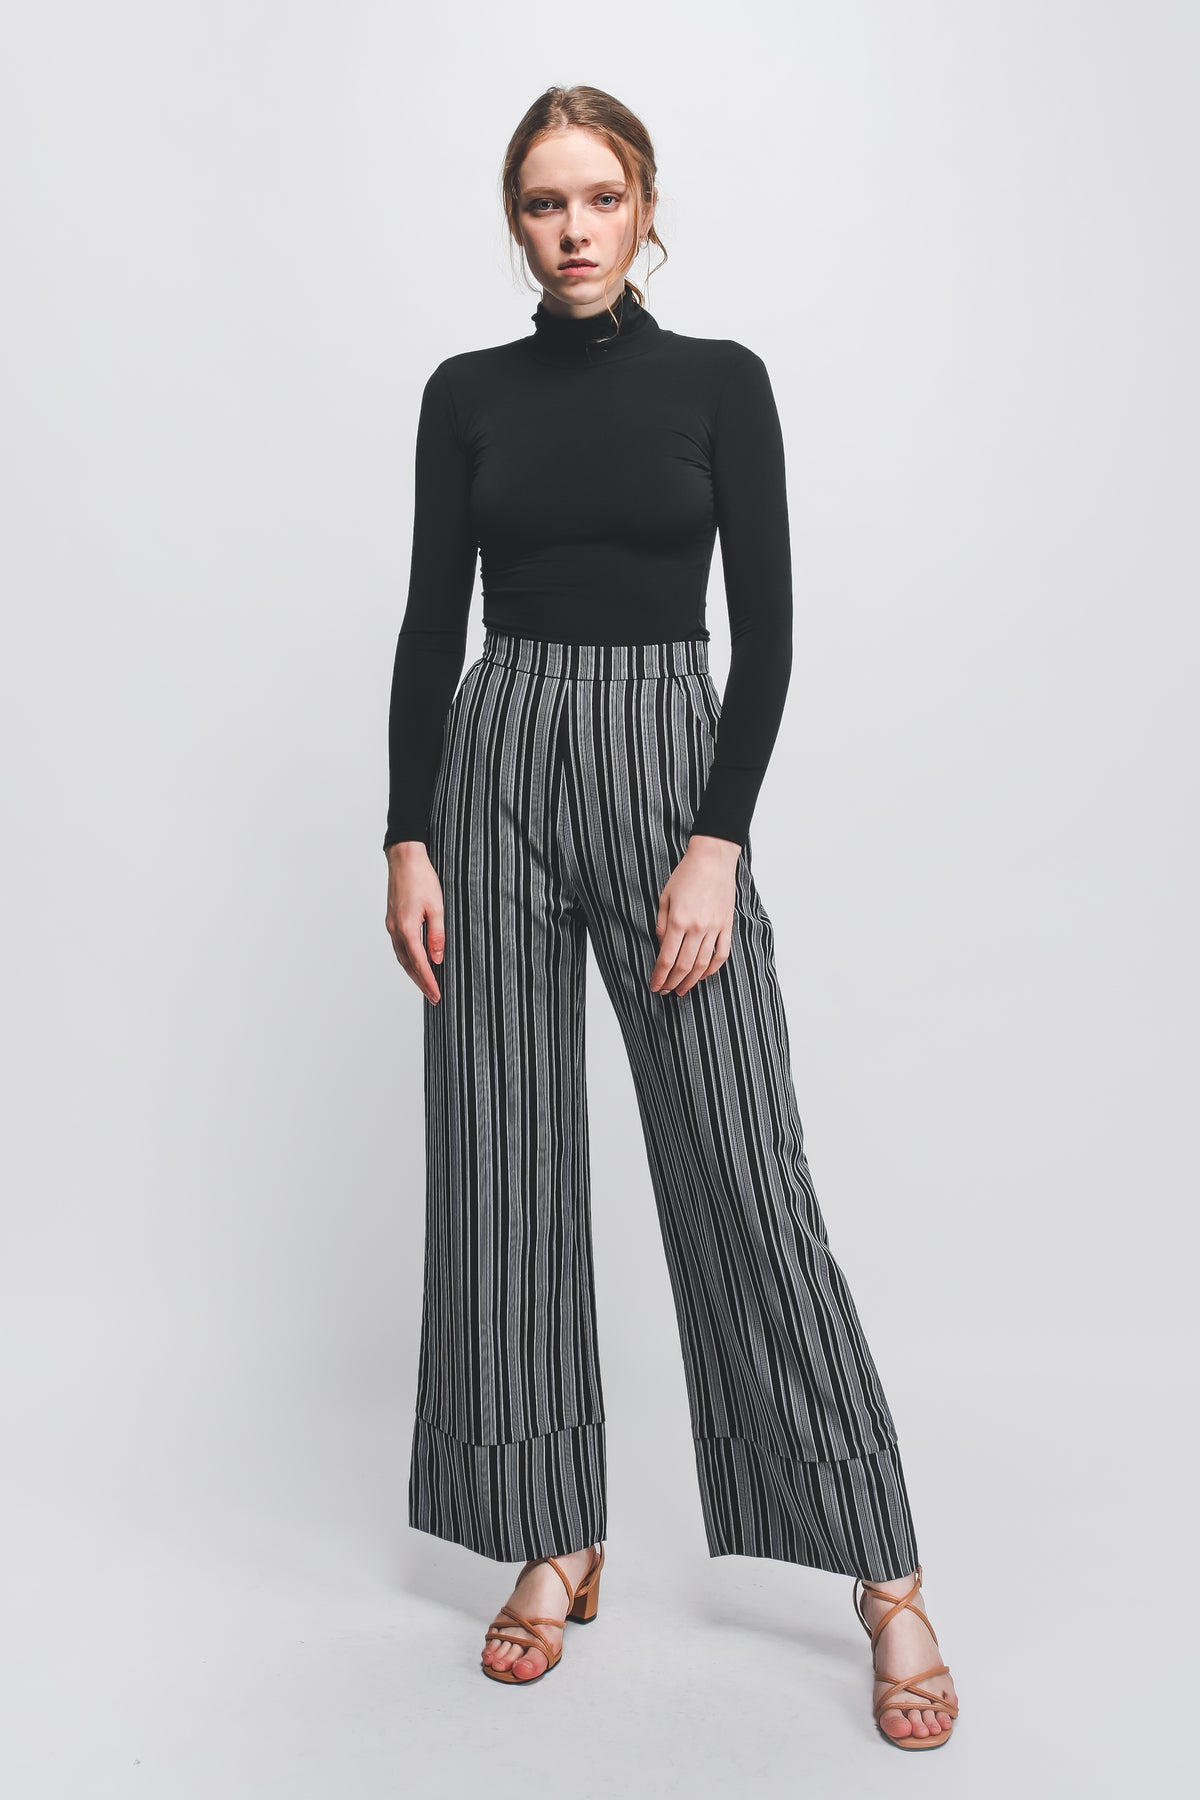 Hem Detailed Wide Legged Pants In Black/White Stripes